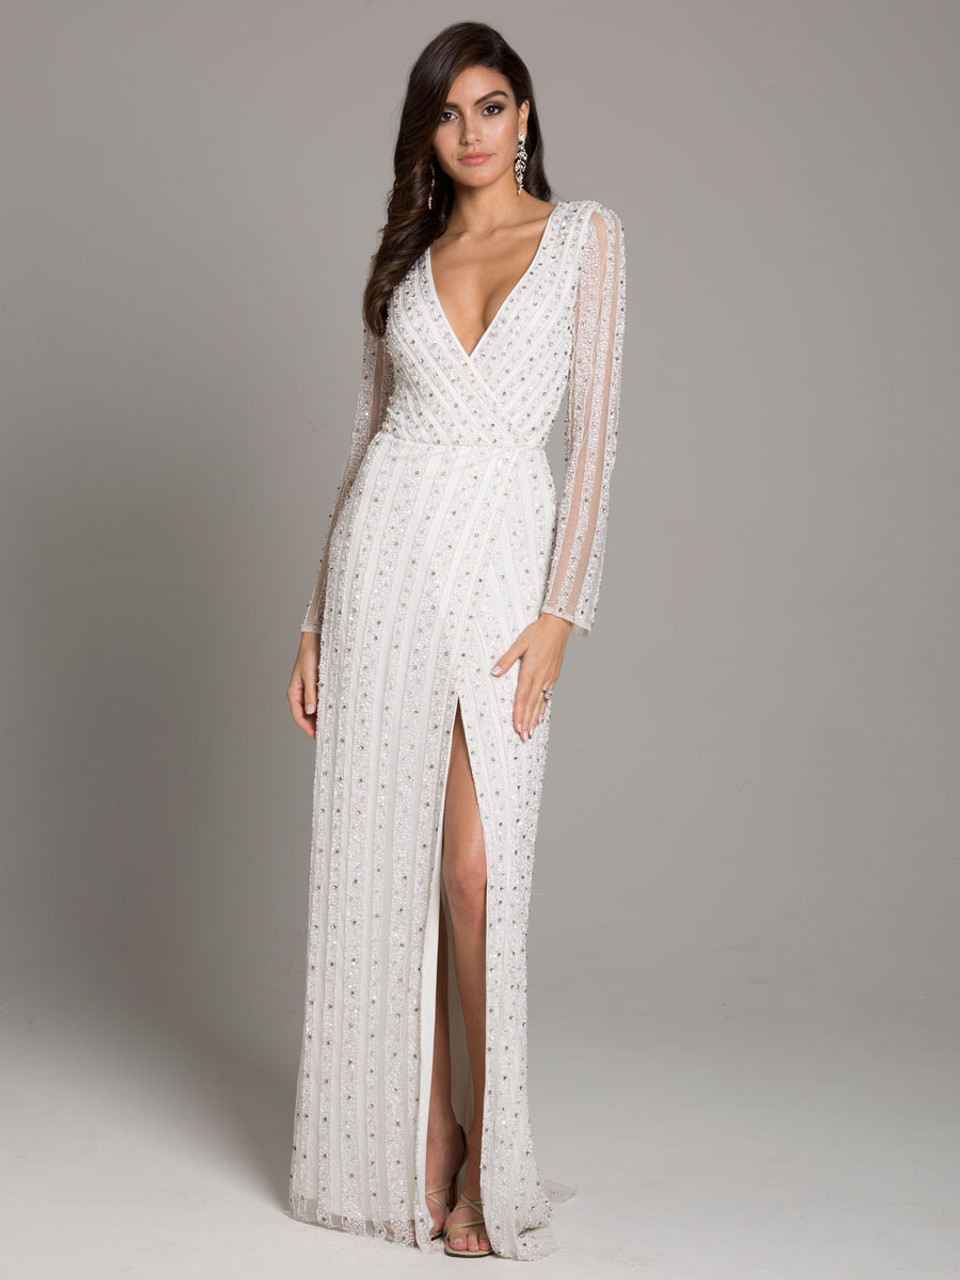 Lara 51007 Beaded Long Sleeve Ivory Dress With Slit